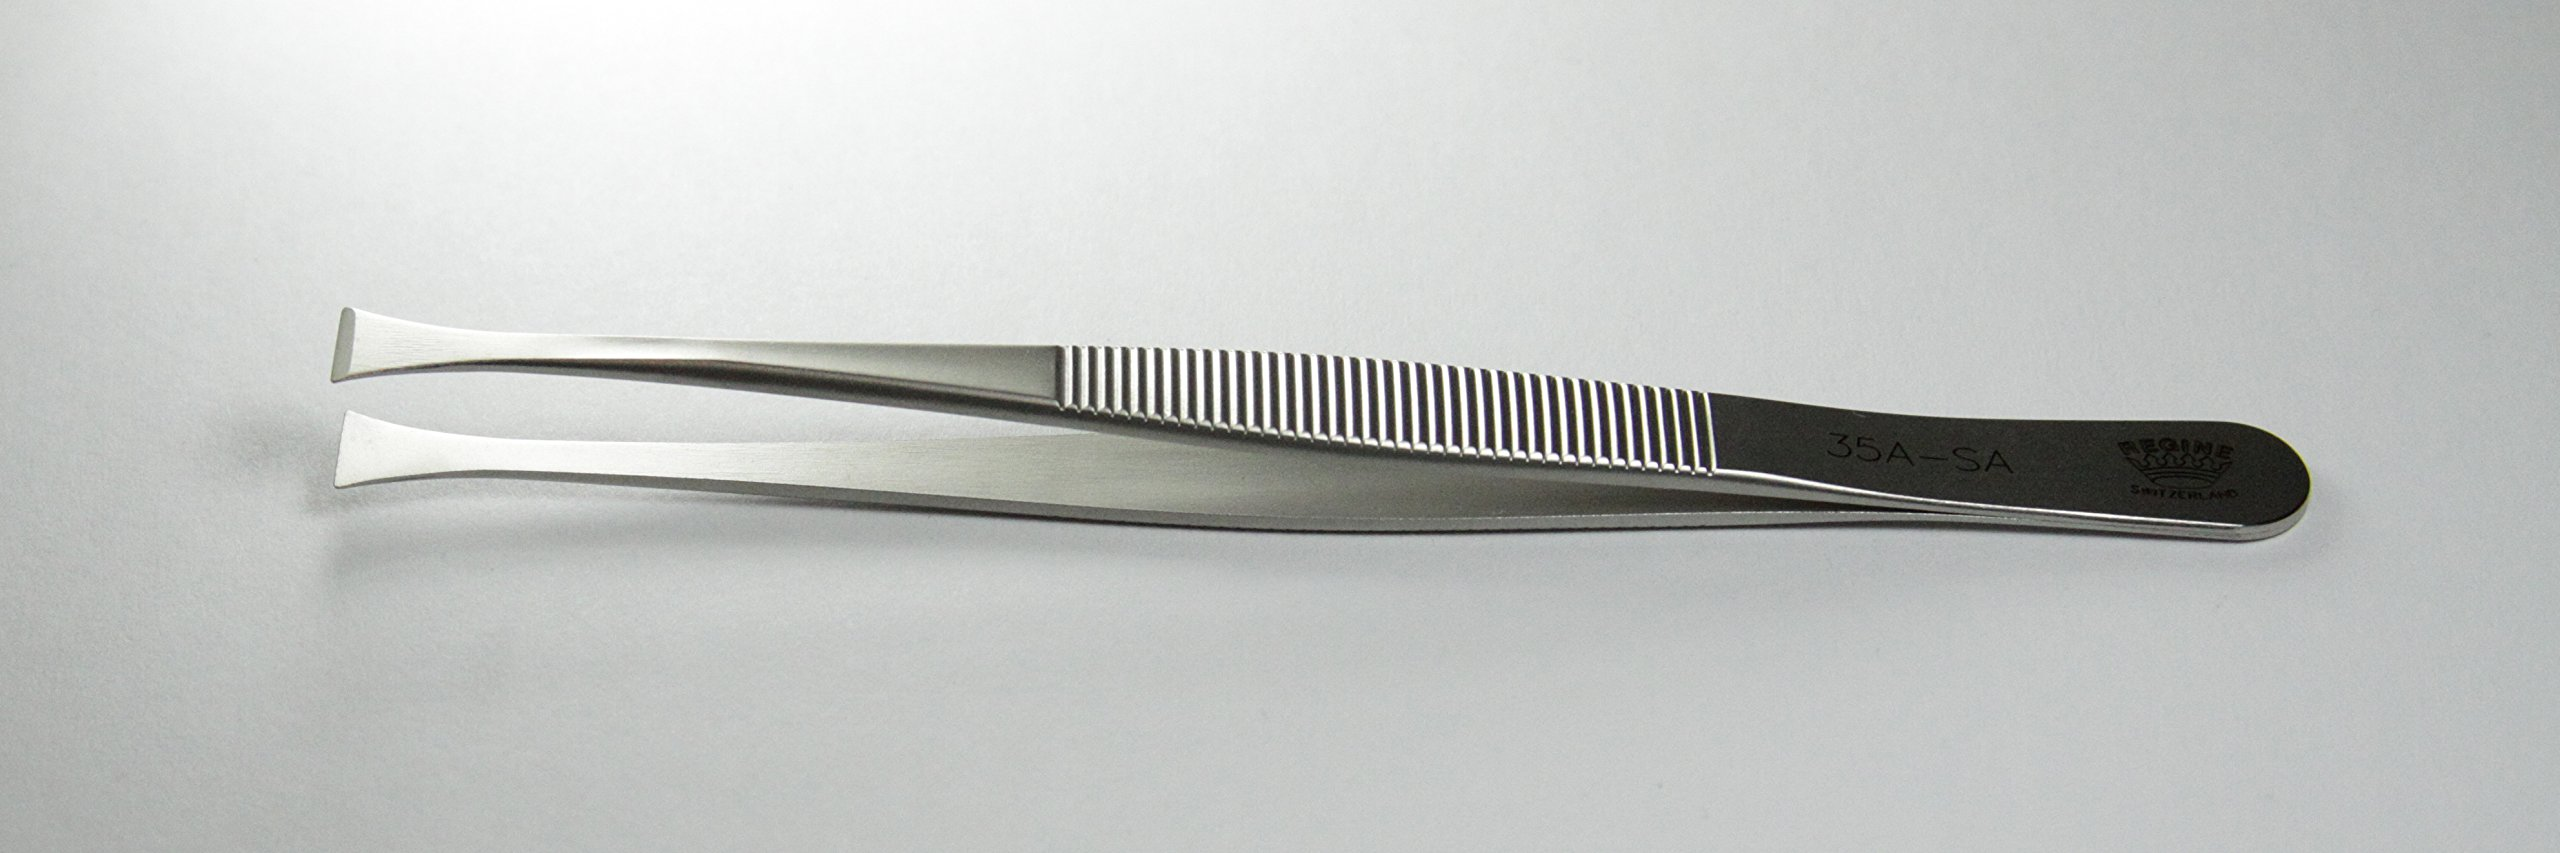 Regine 35A-SA- Flat Points, Straight Tip with Serrated Handle - Tweezer - Antimagnetic, Anti-Acid Steel - Swiss Made - Watchmaking, Electronics, Medical Tweezers by Regine